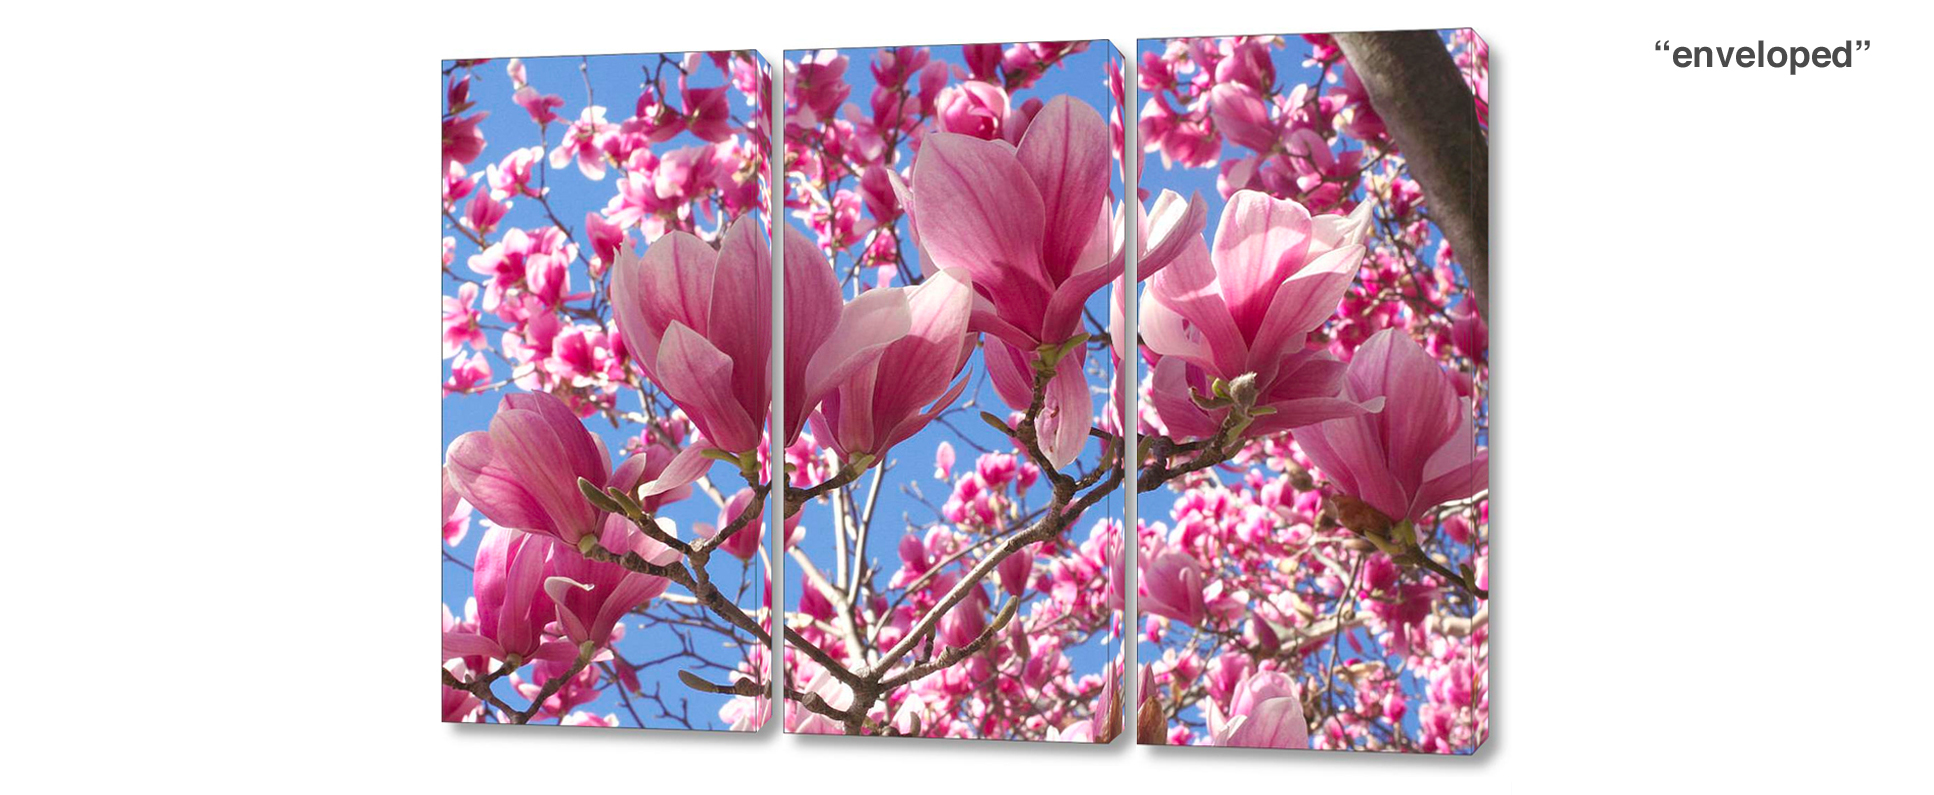 triptych magnolia tree - 3 Piece limited edition giclee canvas floral wall decor